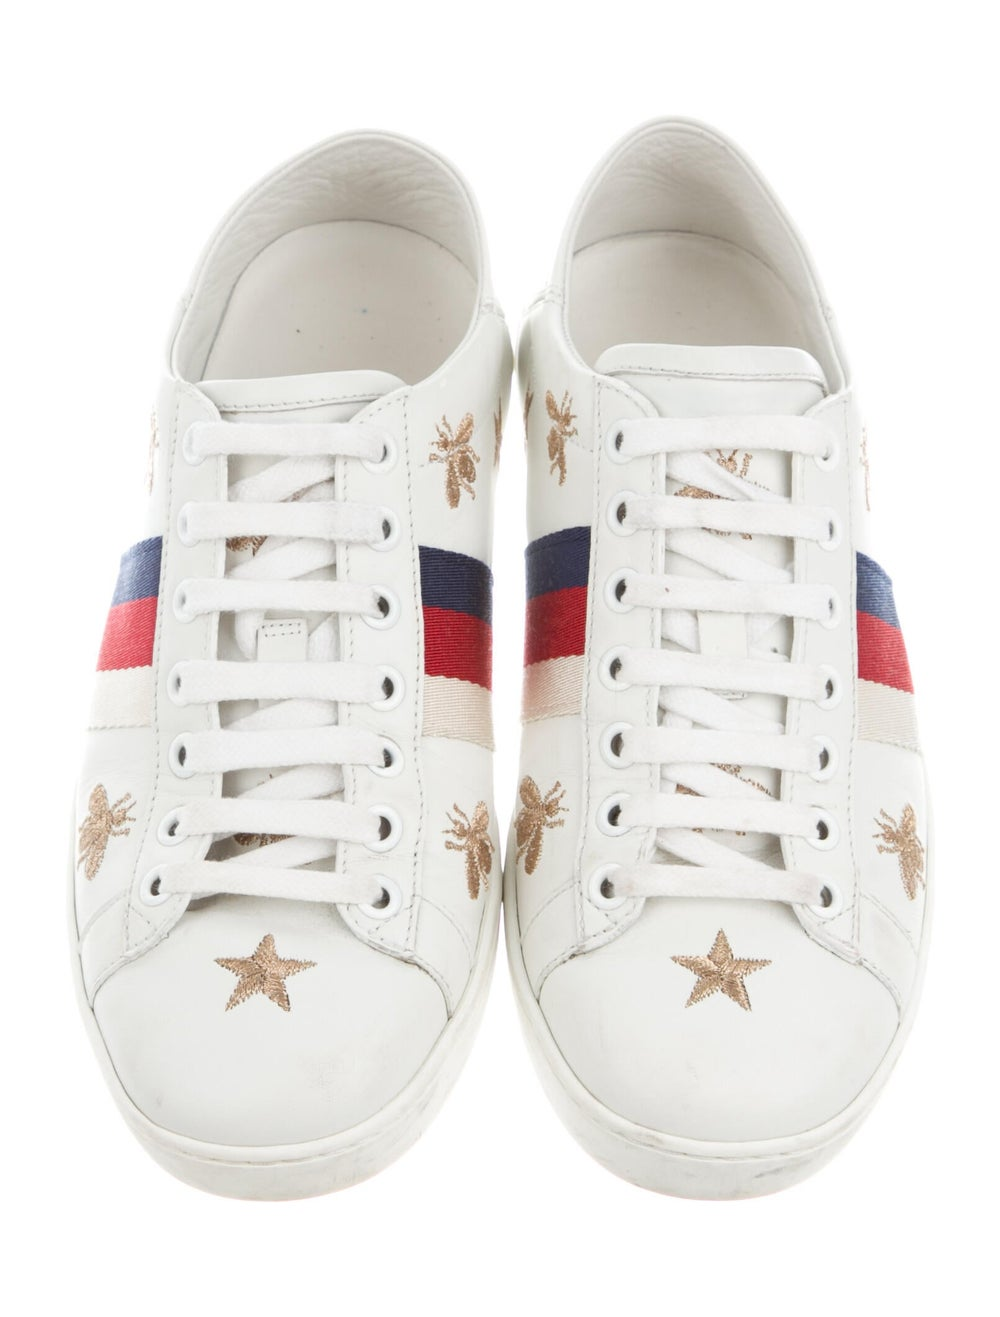 Gucci Ace Sneakers White - image 3